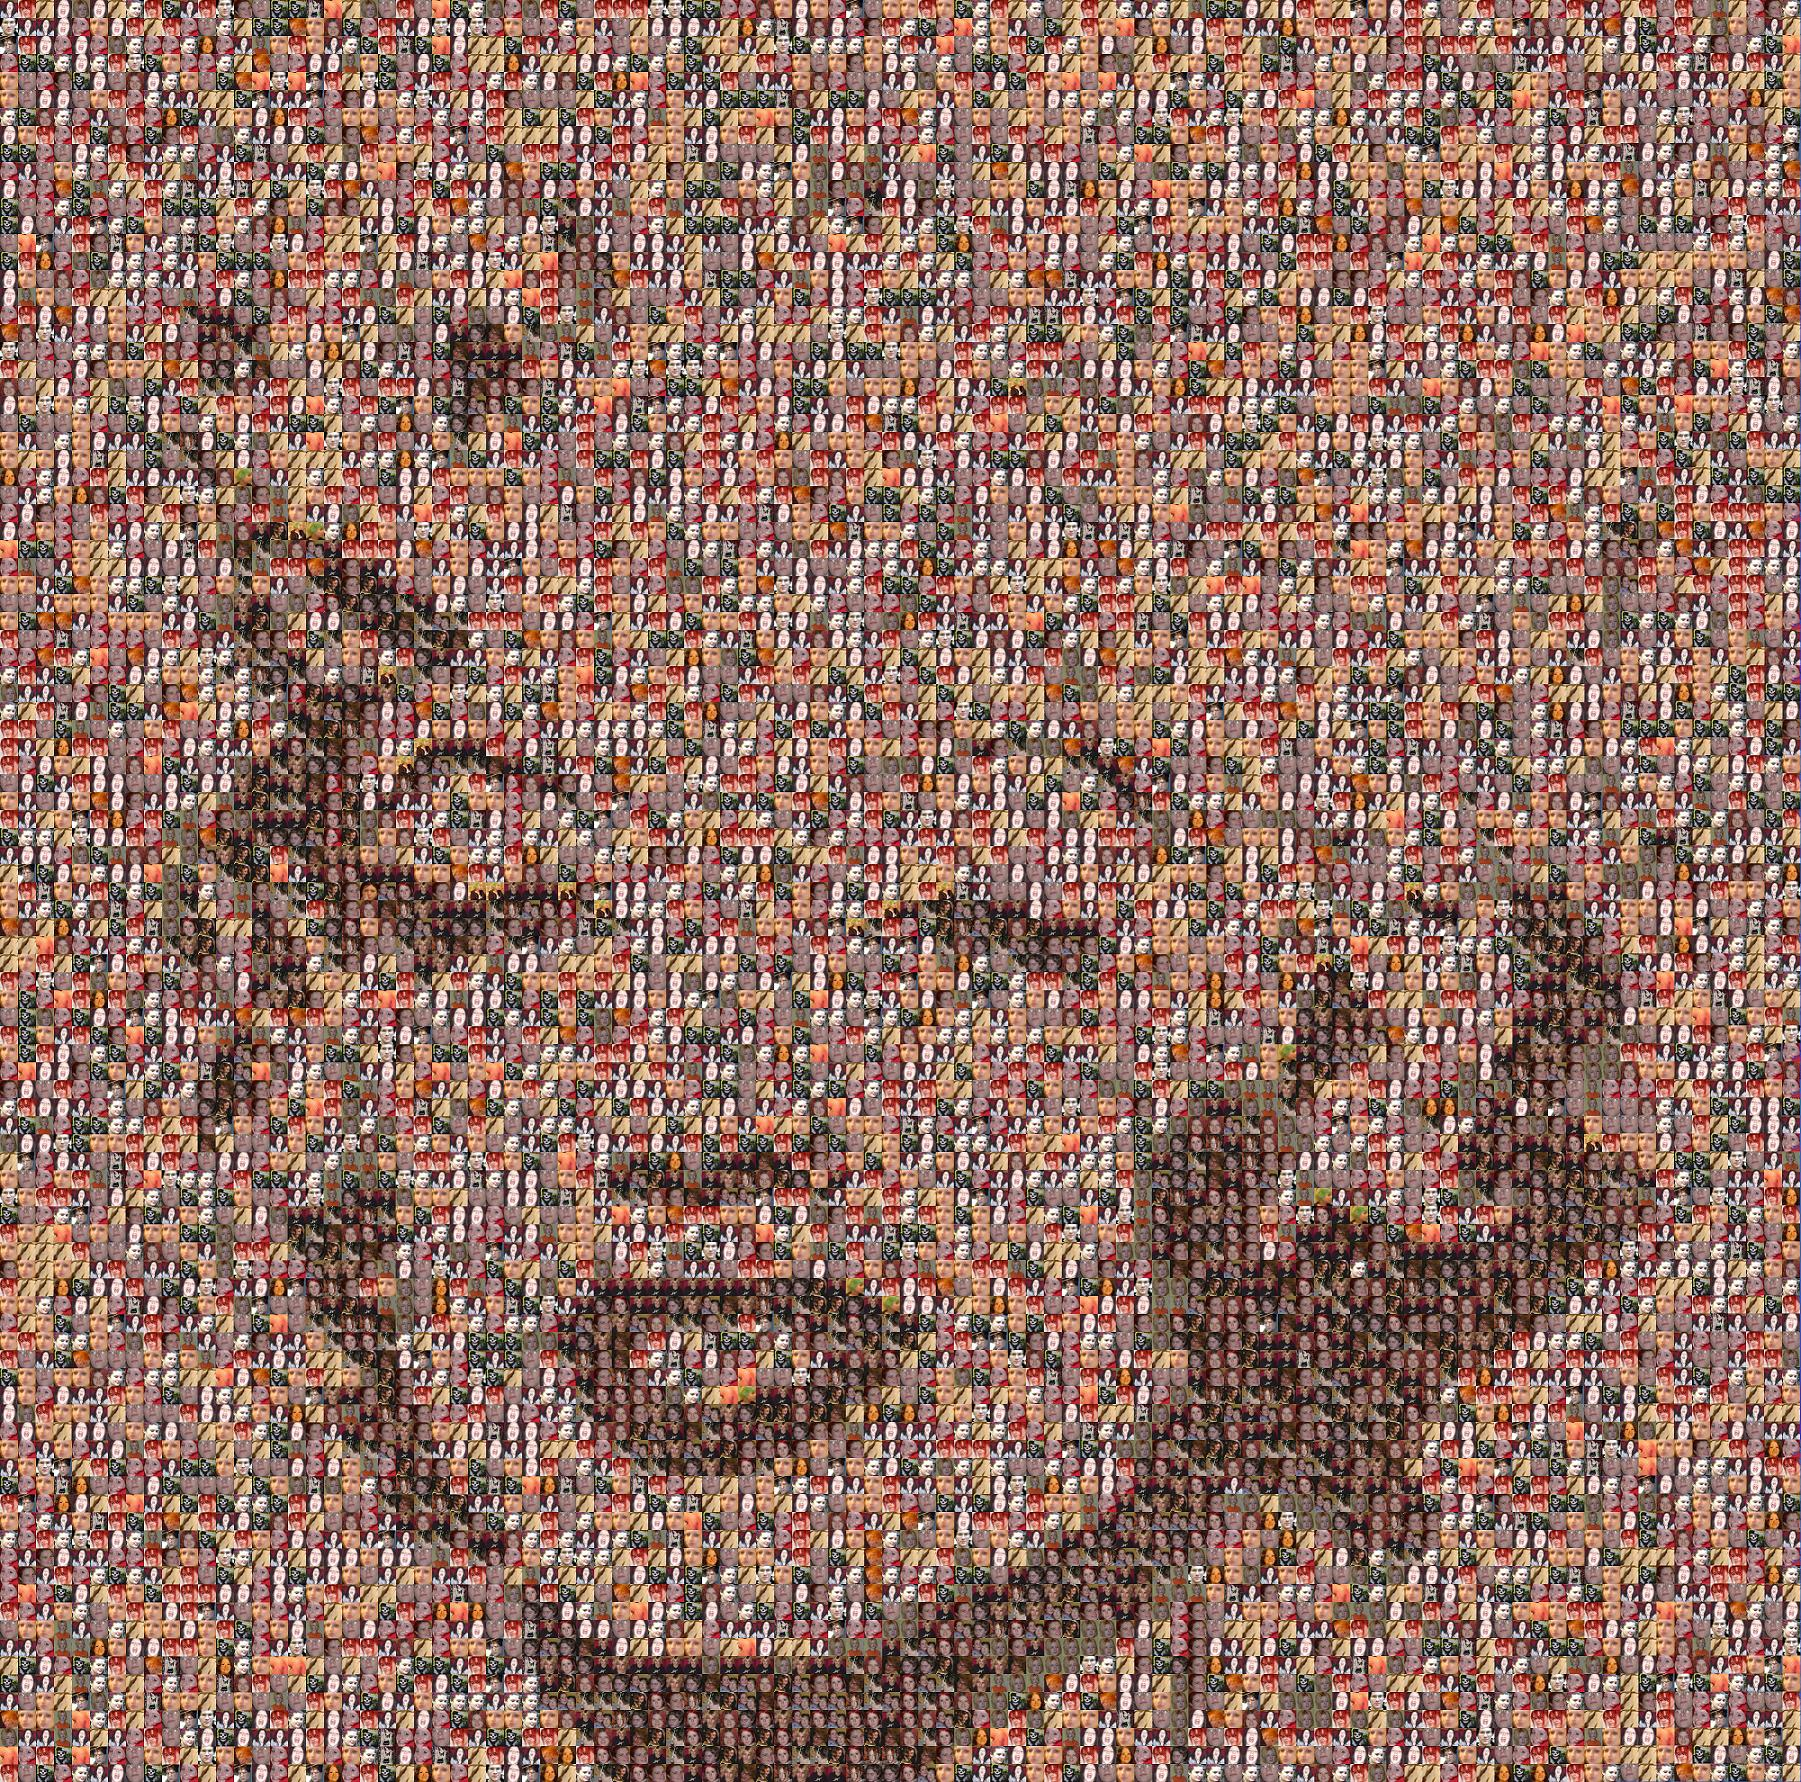 30  incredible examples of photo mosaic portraits